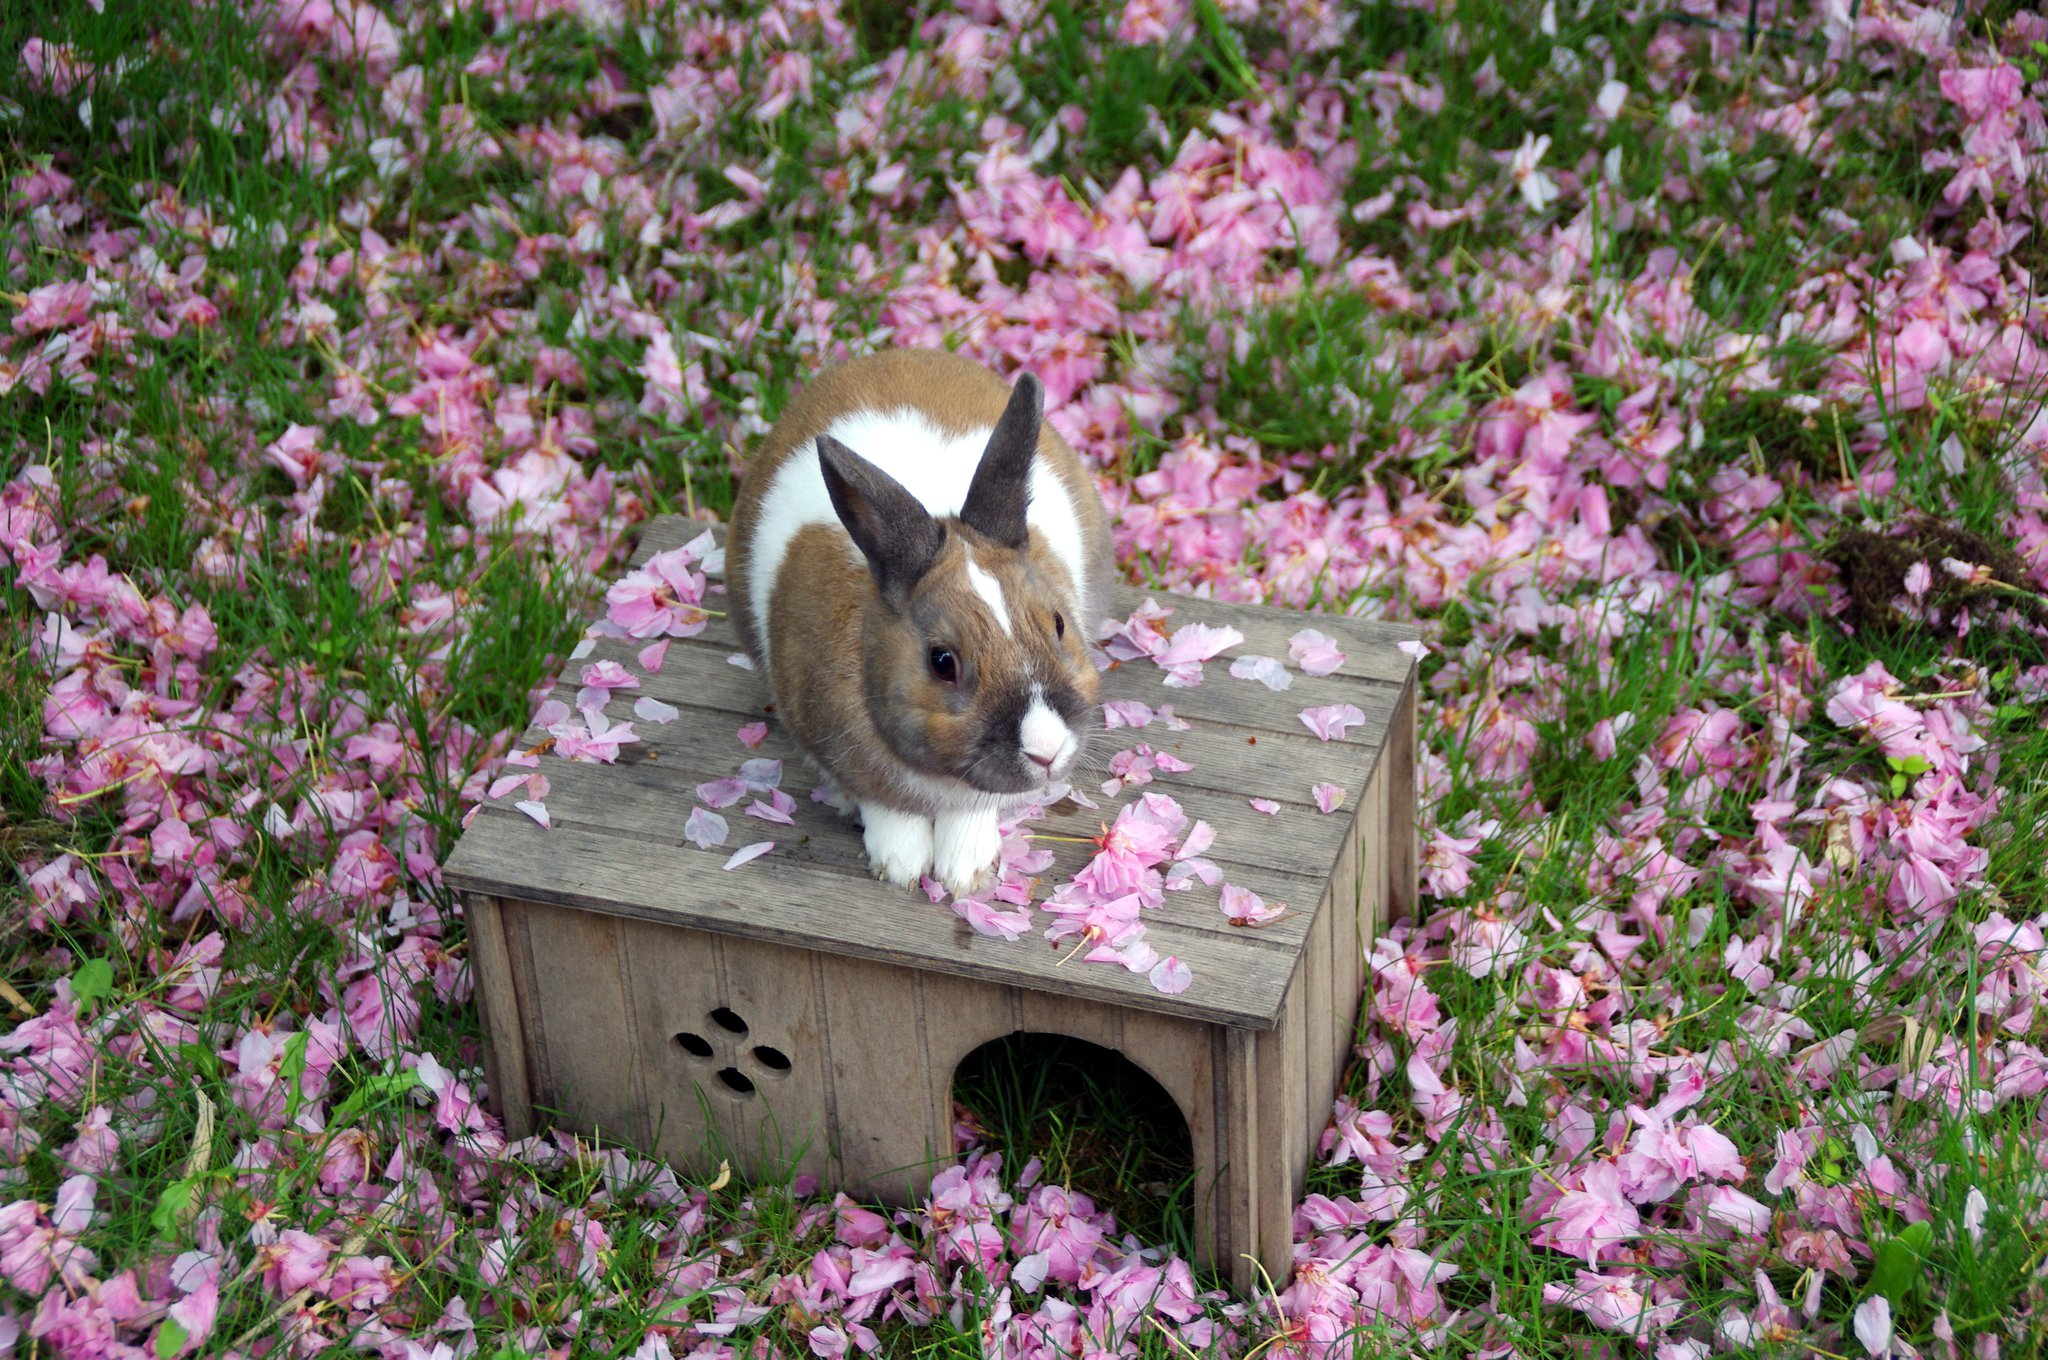 Bunny Stands on His House to Get a Better Look Around the Garden